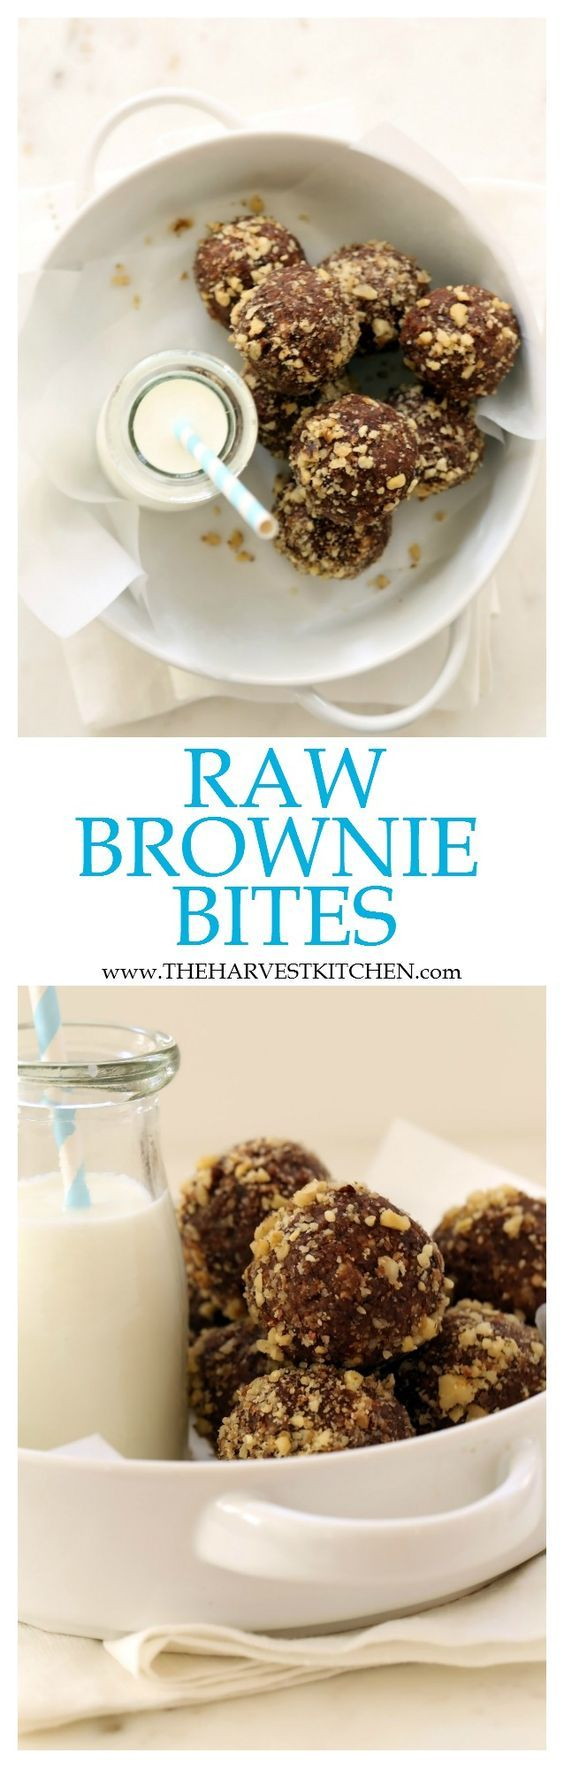 recipe: healthy brownies made with dates [36]